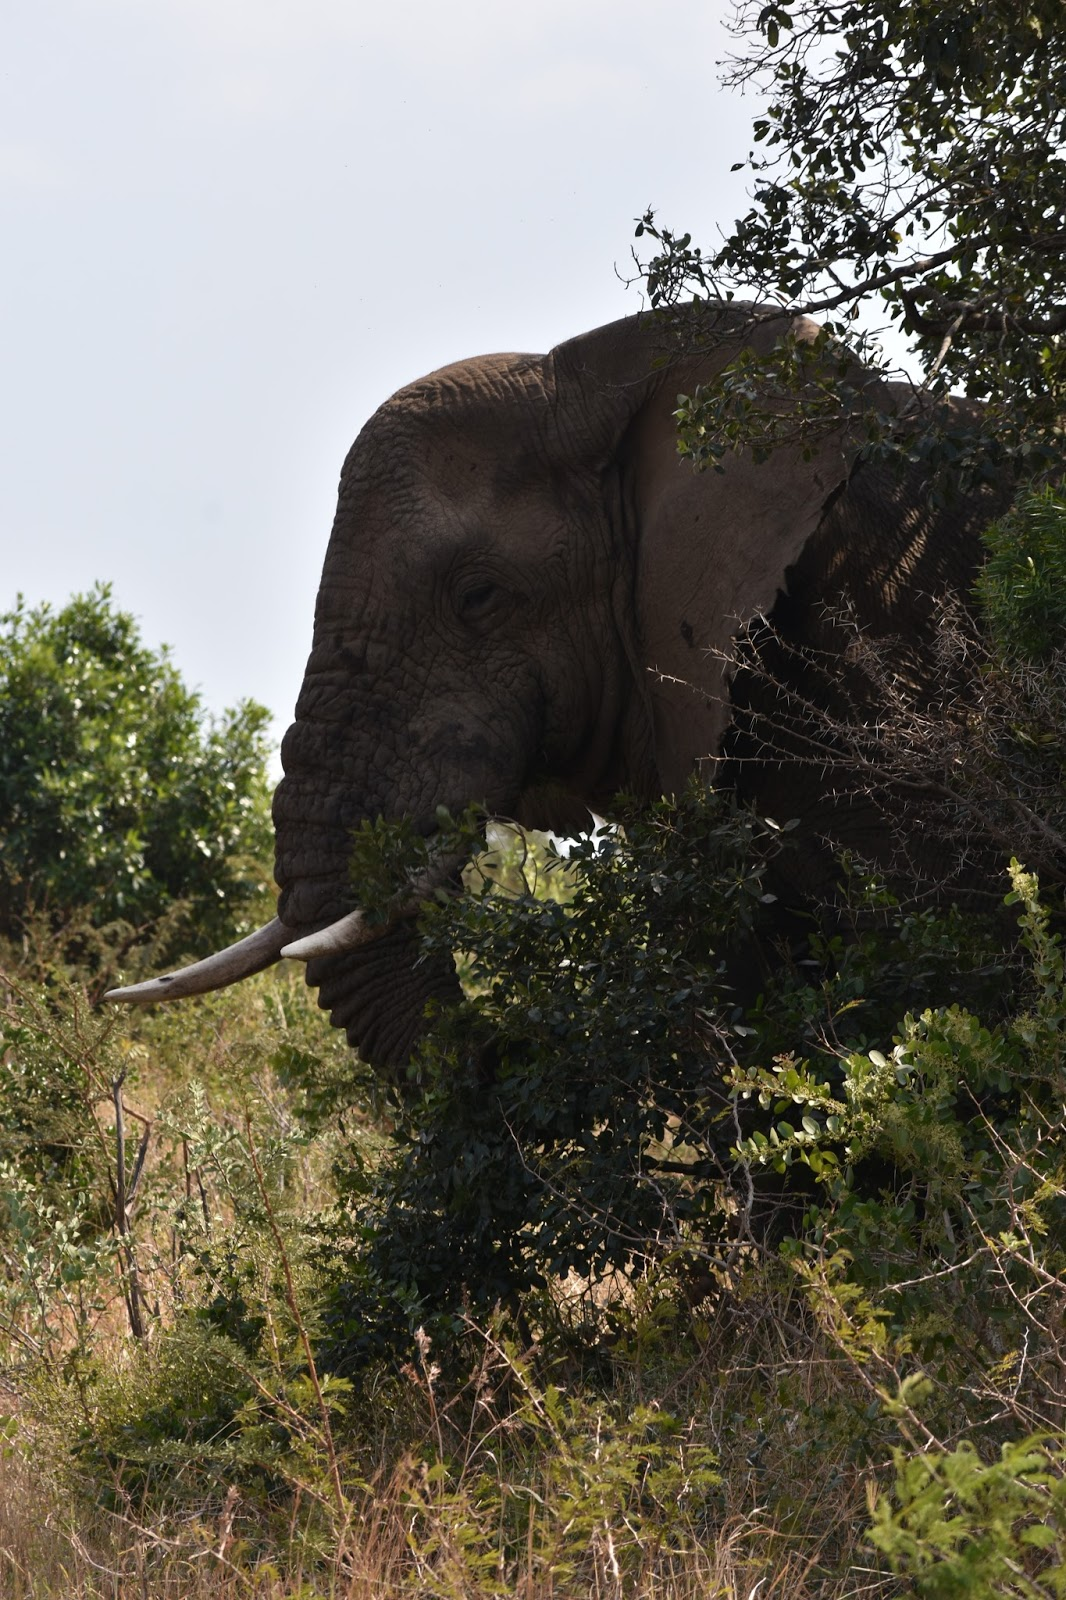 Picture of a elephant eating leaves.